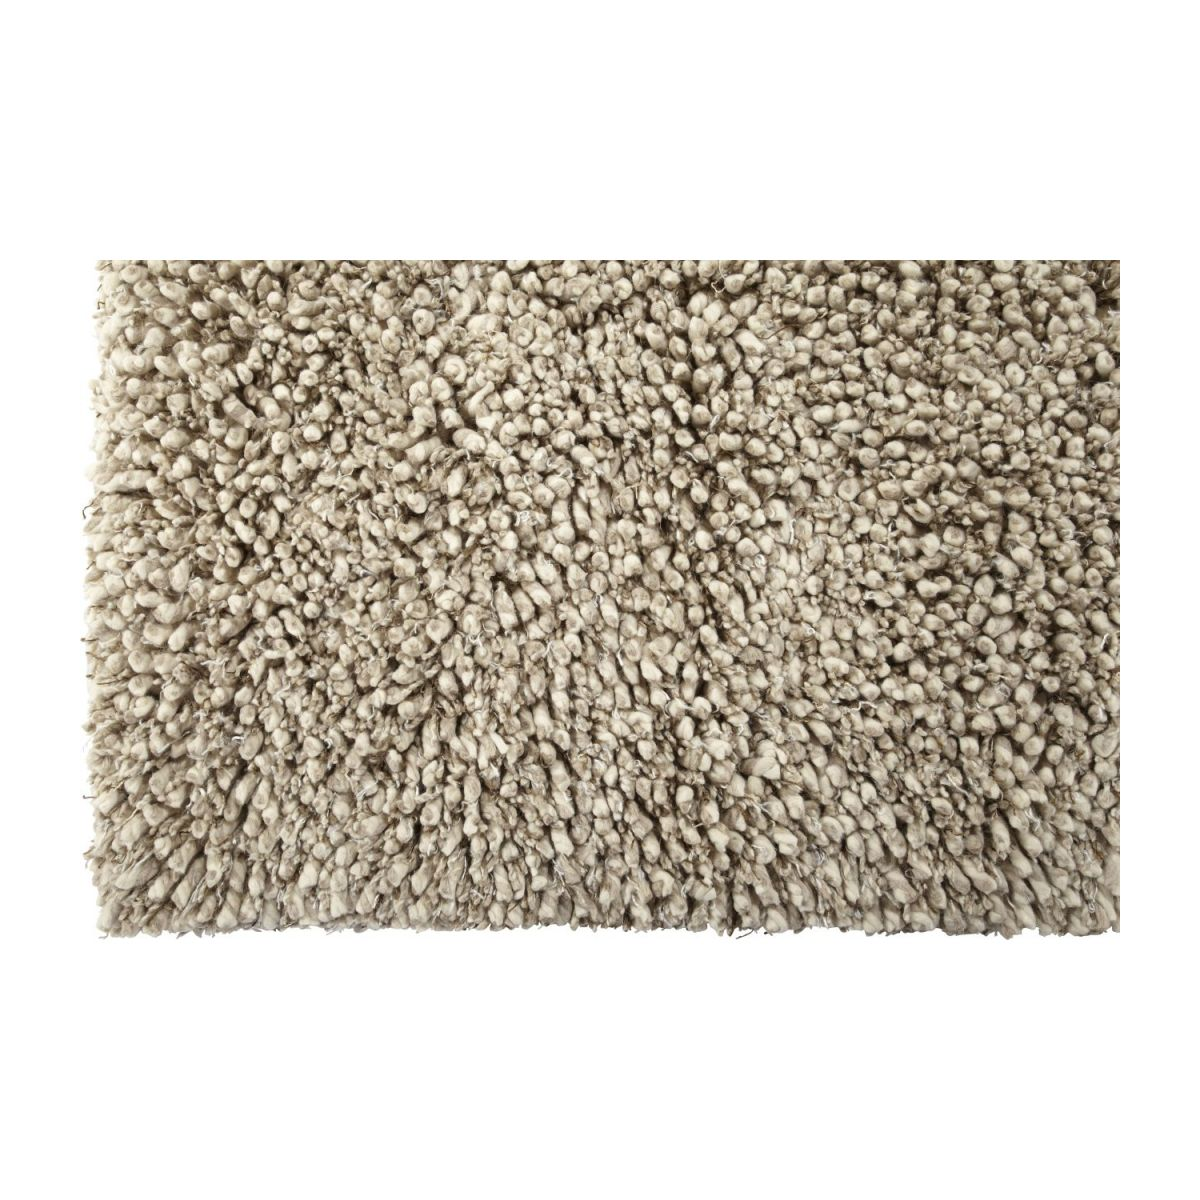 Wool carpet 70X240 n°3